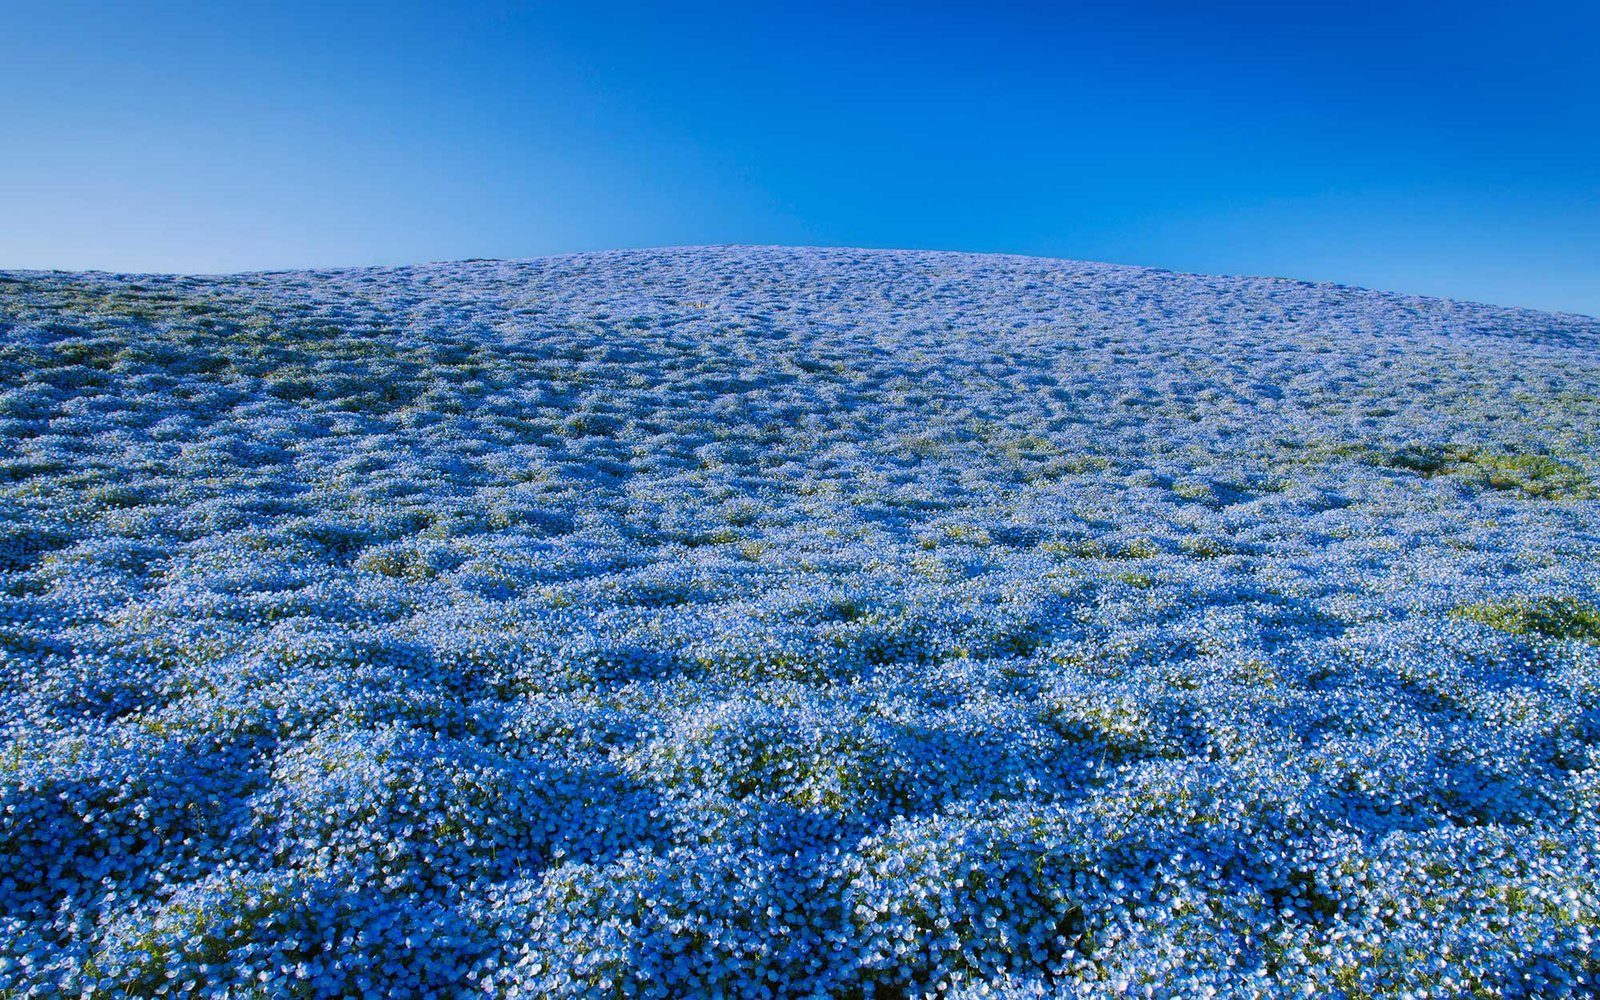 Late Fall Iphone Wallpaper Over 4 Million Blue Flowers Bloomed At A Japanese Park